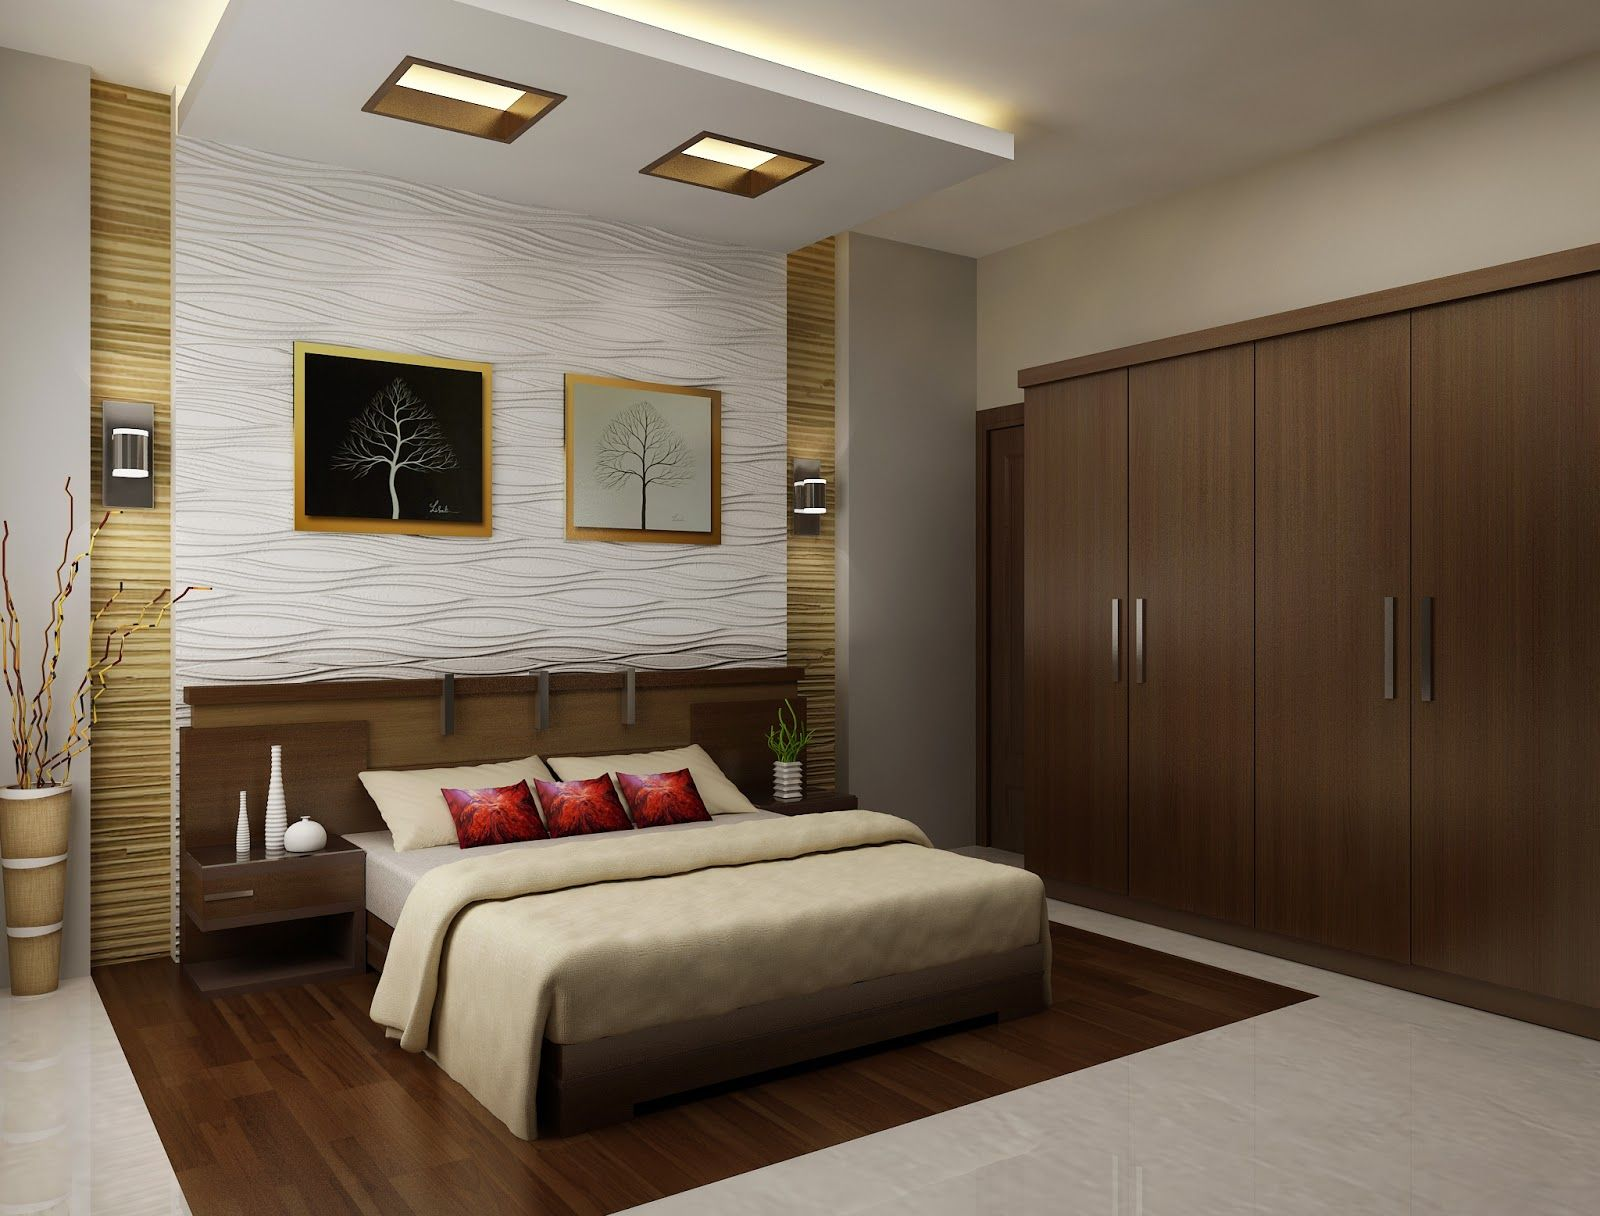 Color Design For Bedroom Bedroom Art Design Bedroom Interior Design With Brown White Color